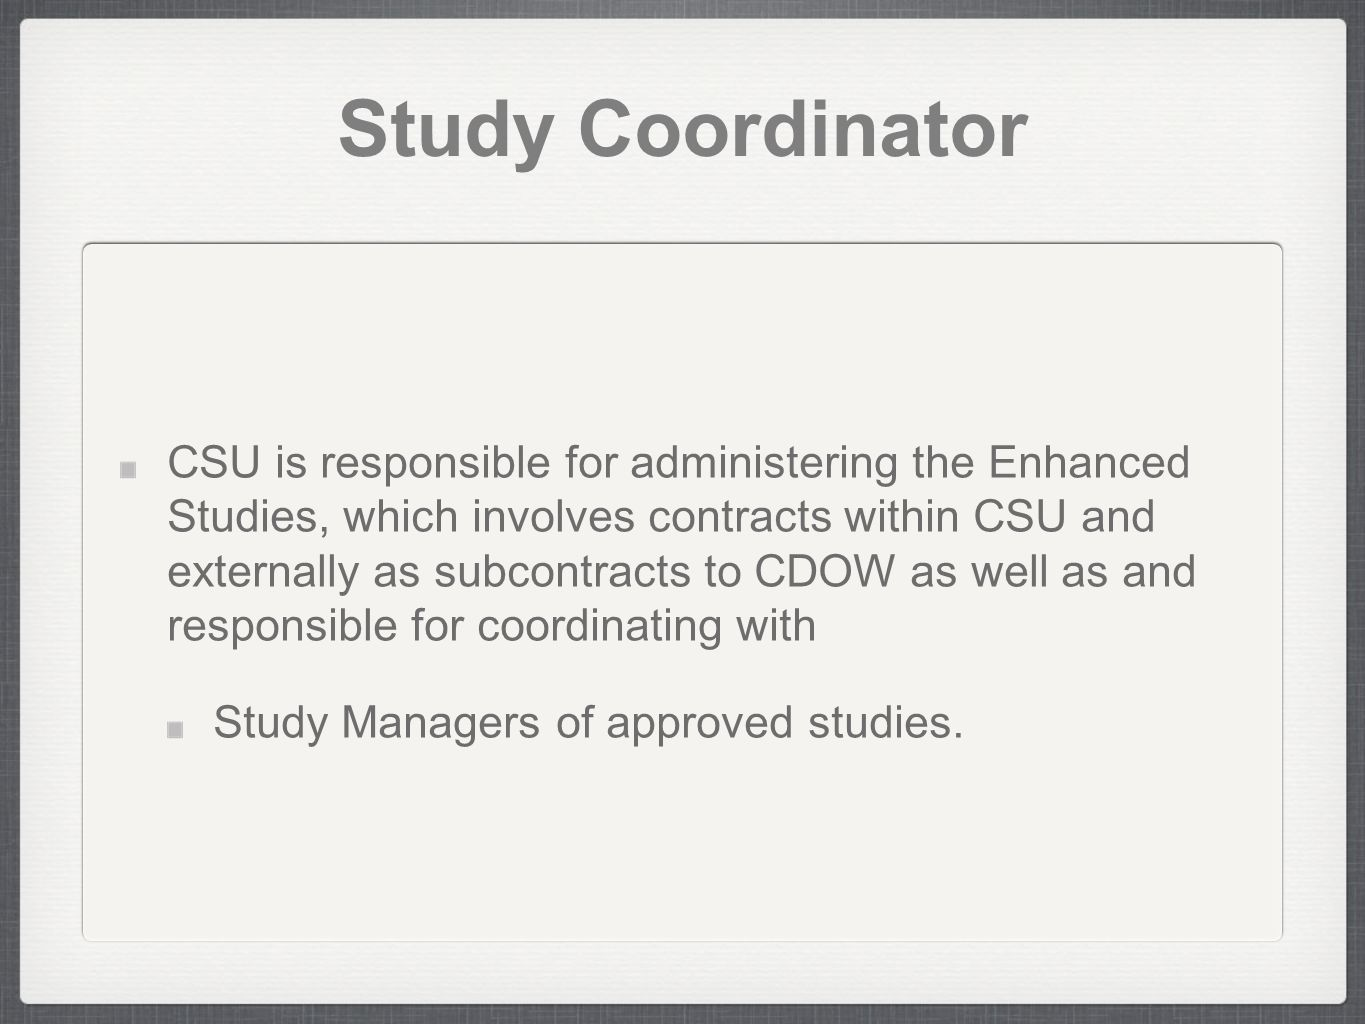 Study Coordinator CSU is responsible for administering the Enhanced Studies, which involves contracts within CSU and externally as subcontracts to CDOW as well as and responsible for coordinating with Study Managers of approved studies.